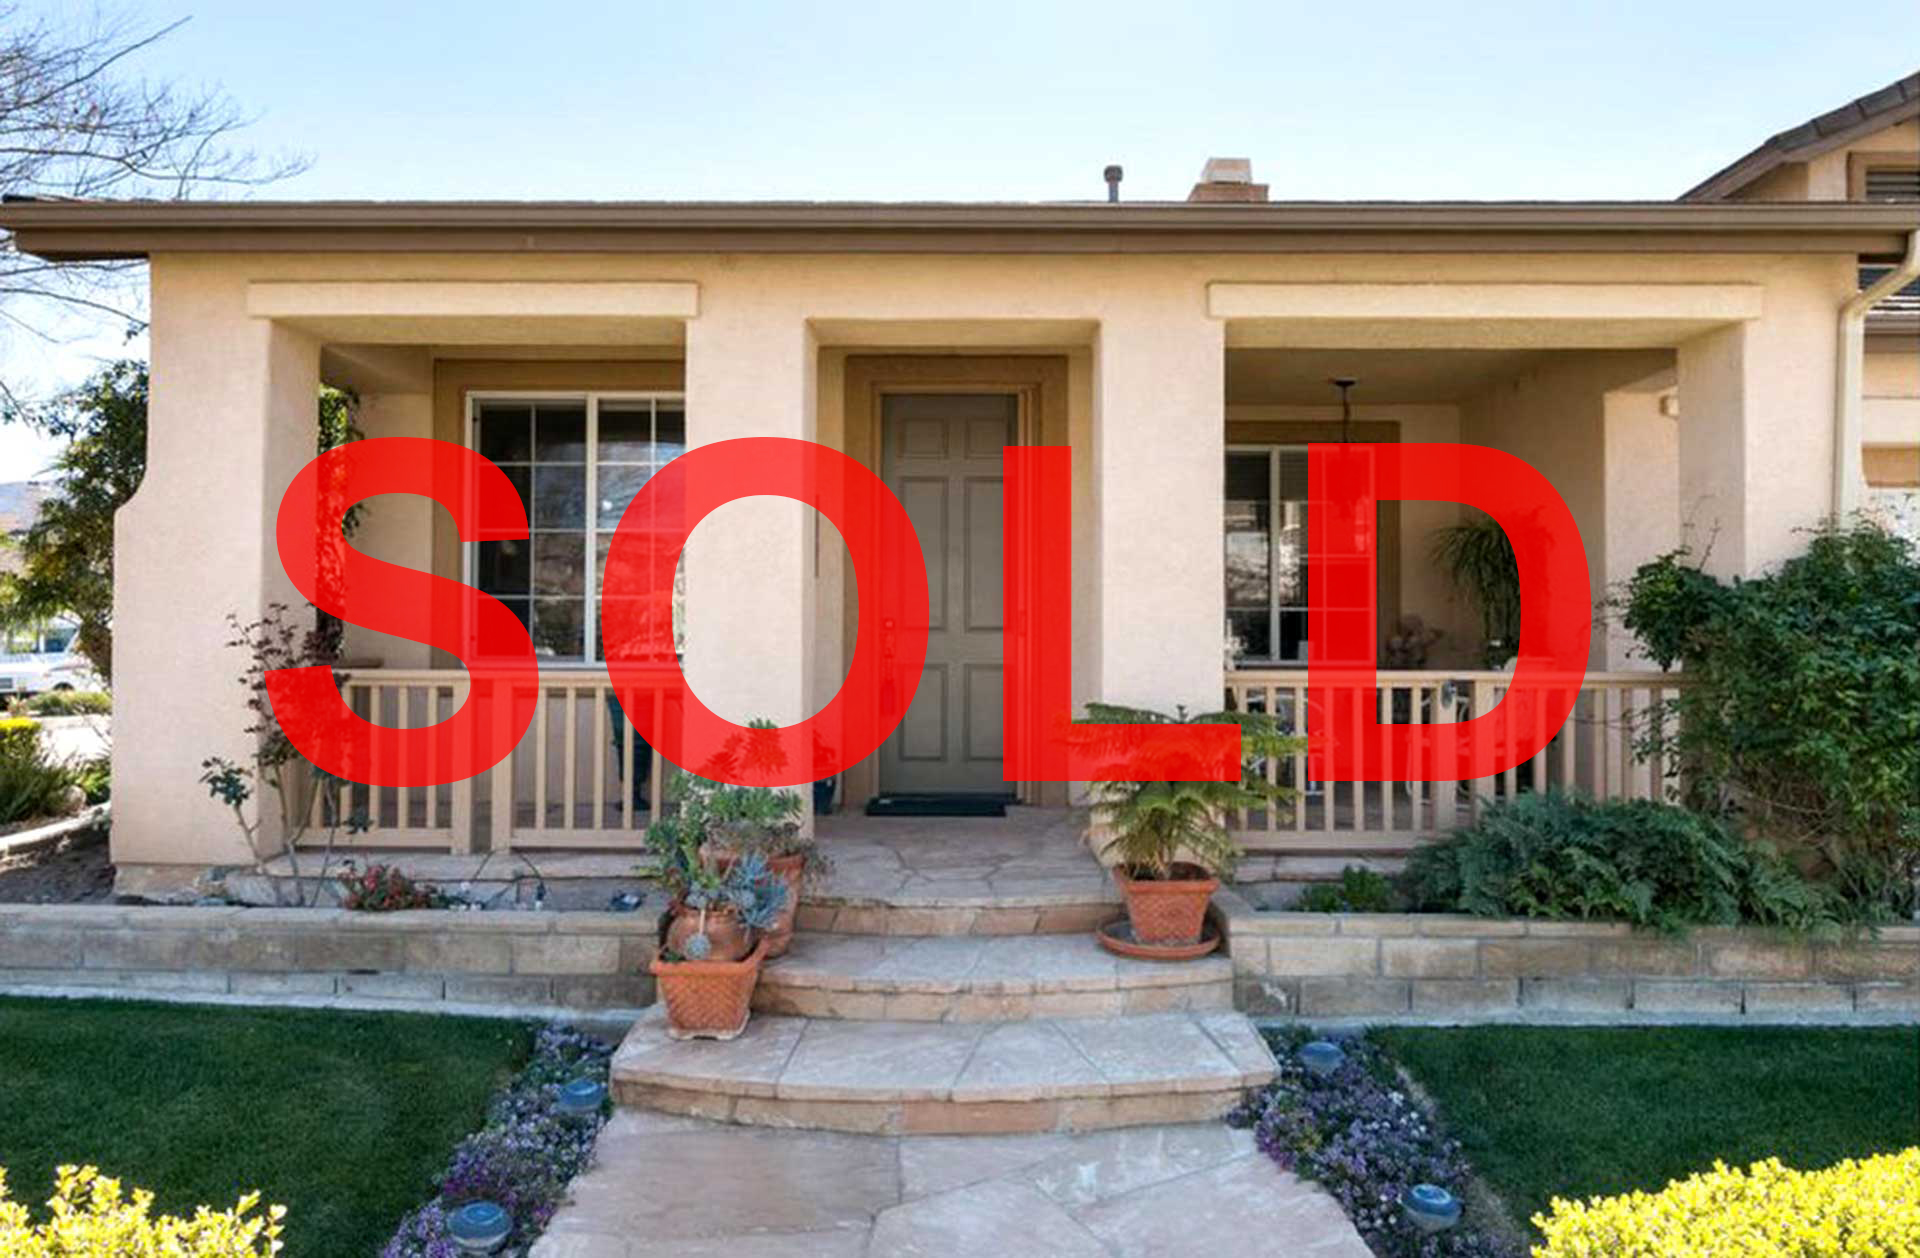 804-Union-Pacific-Street,-Fillmore-sold.jpg